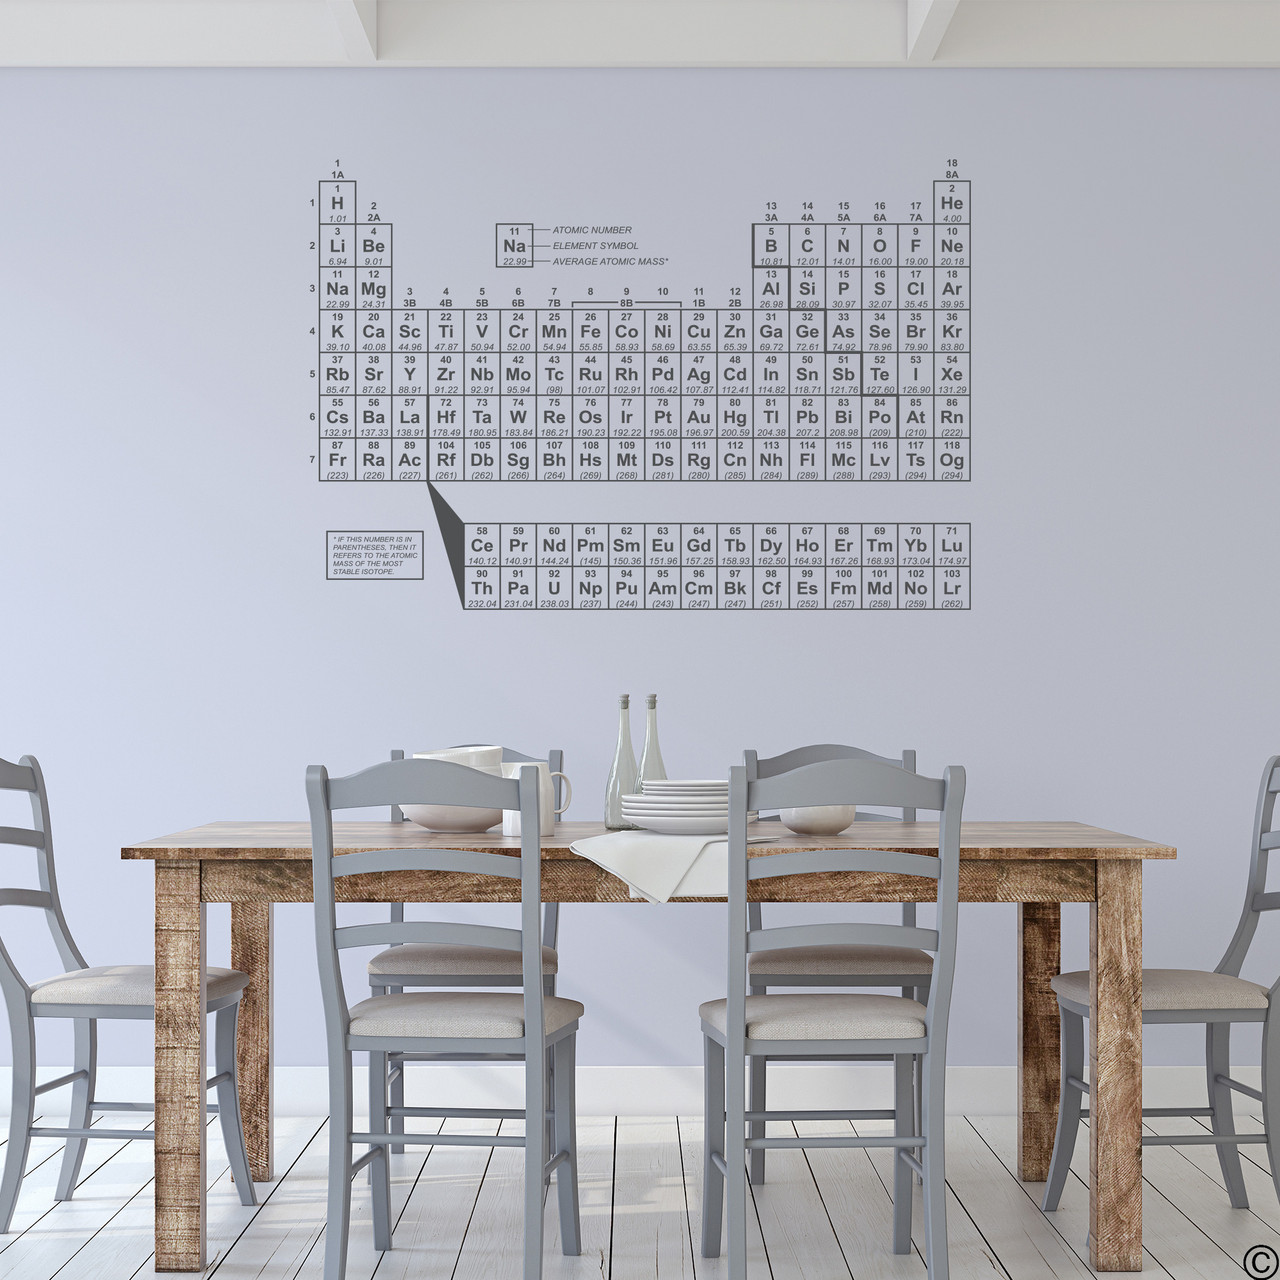 The advance periodic table wall decal for high school science and beyond, shown here on a wall in dark grey.